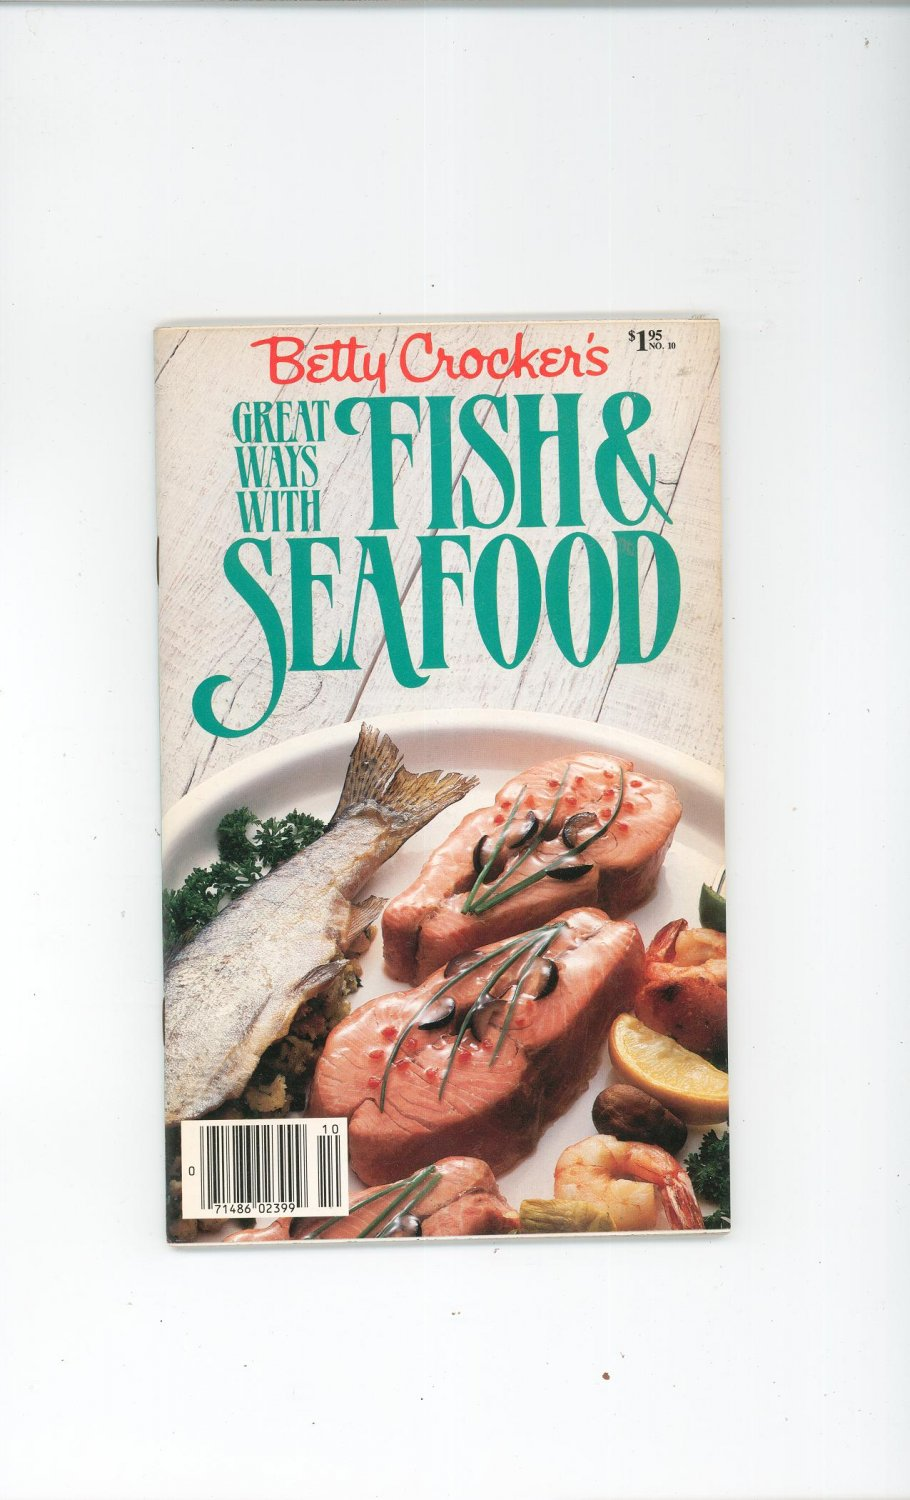 Betty Crocker's Great Ways With Fish & Seafood Cookbook Number 10 1985